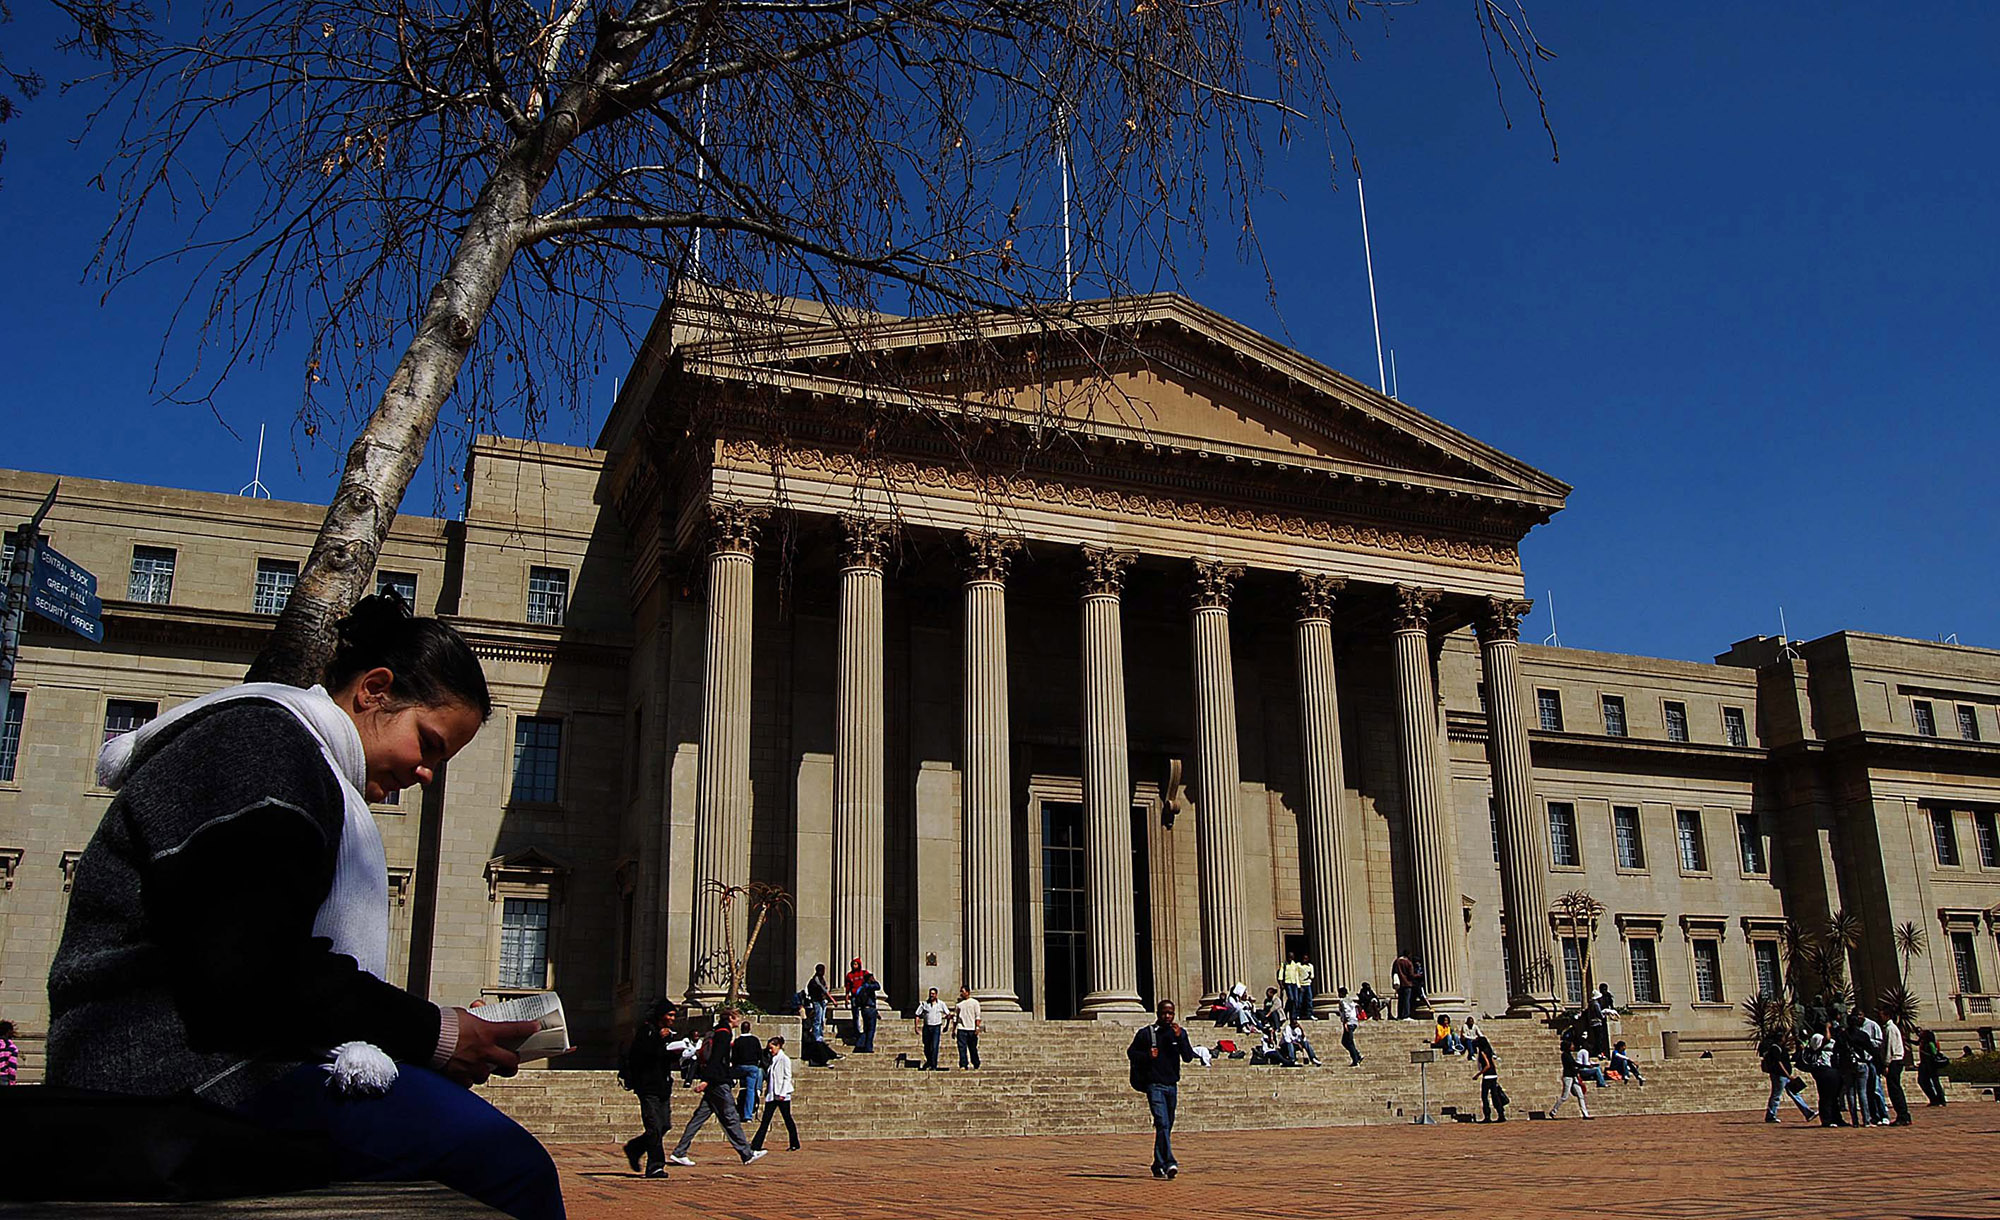 The discovery was made by students at Witwatersrand University